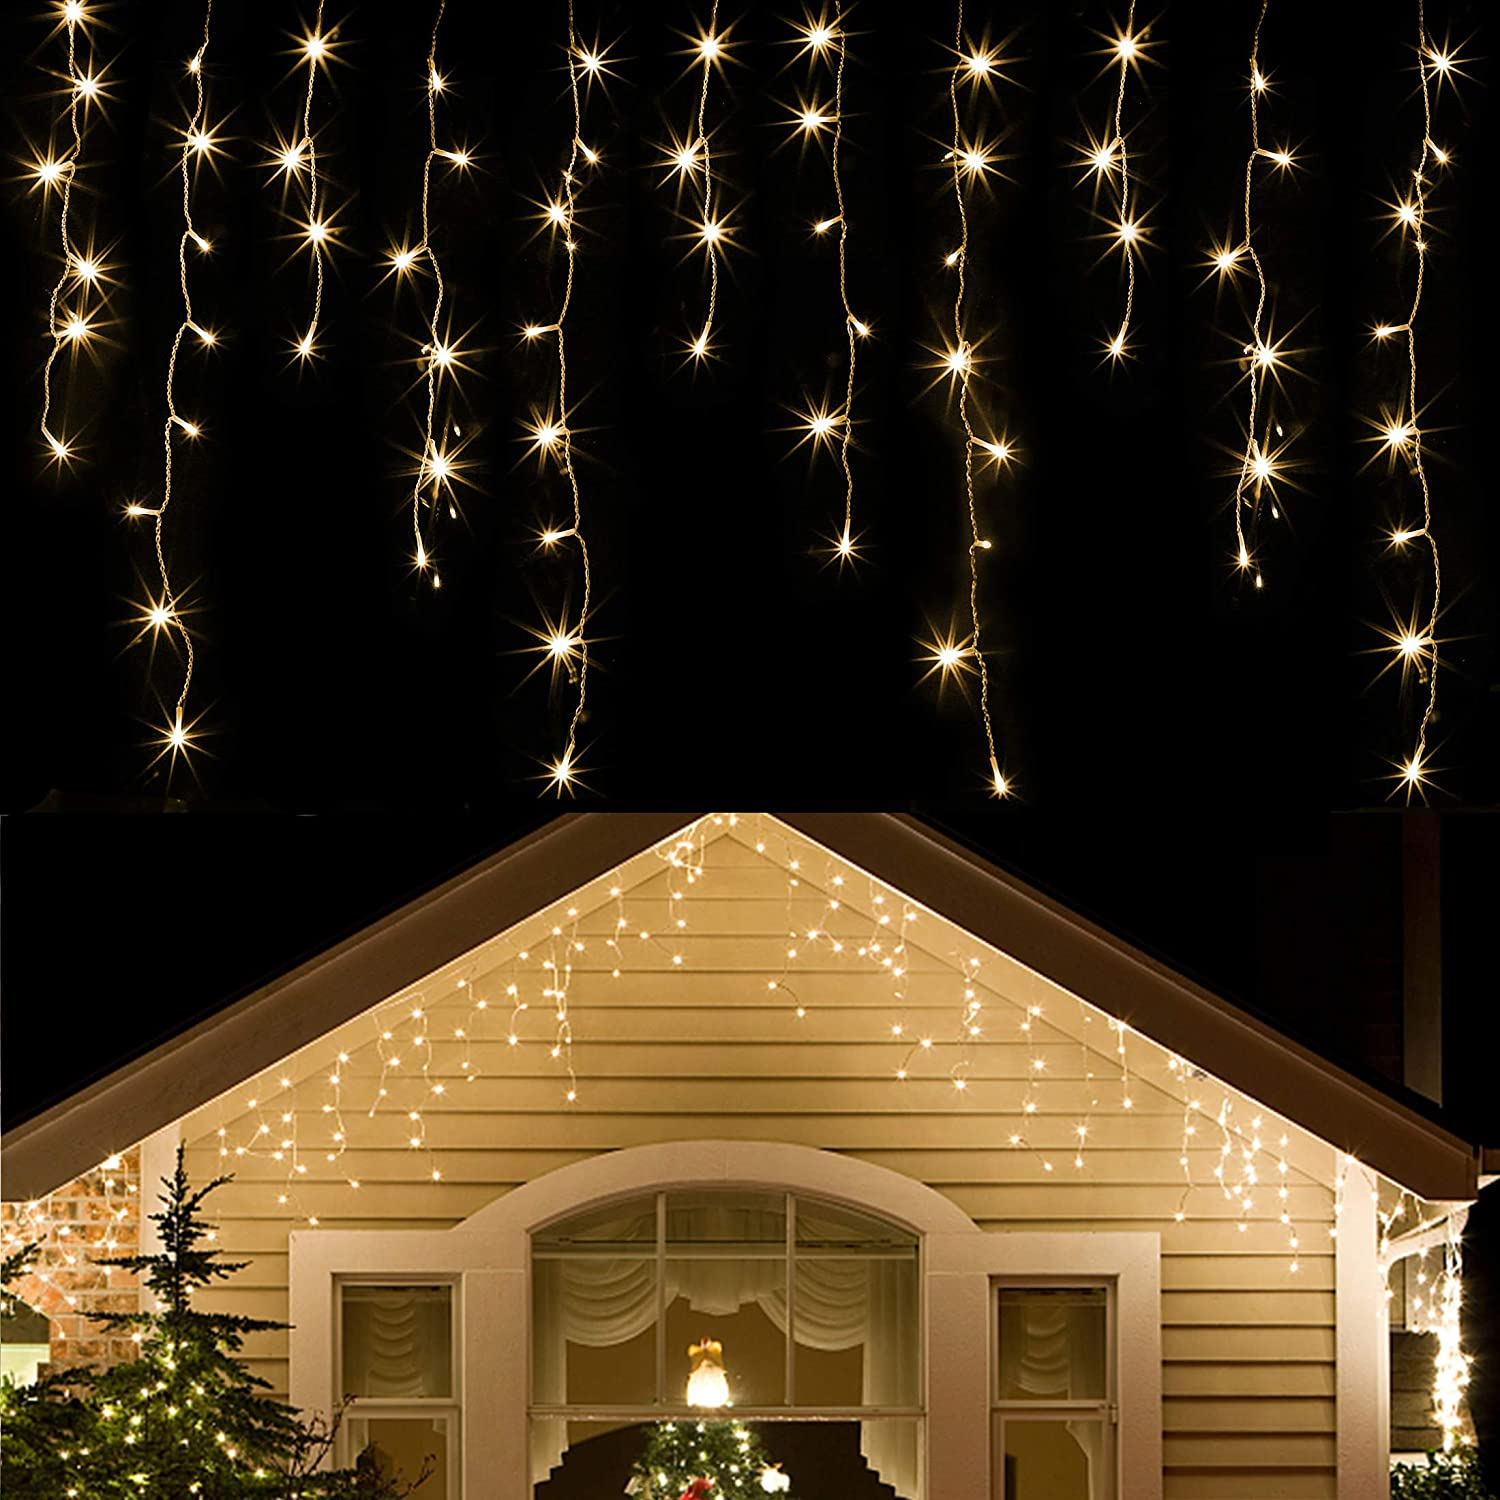 WATERGLIDE 360 LED Christmas Iciclelights C Outdoor Super Limited time cheap sale Special SALE held Ice Dripping